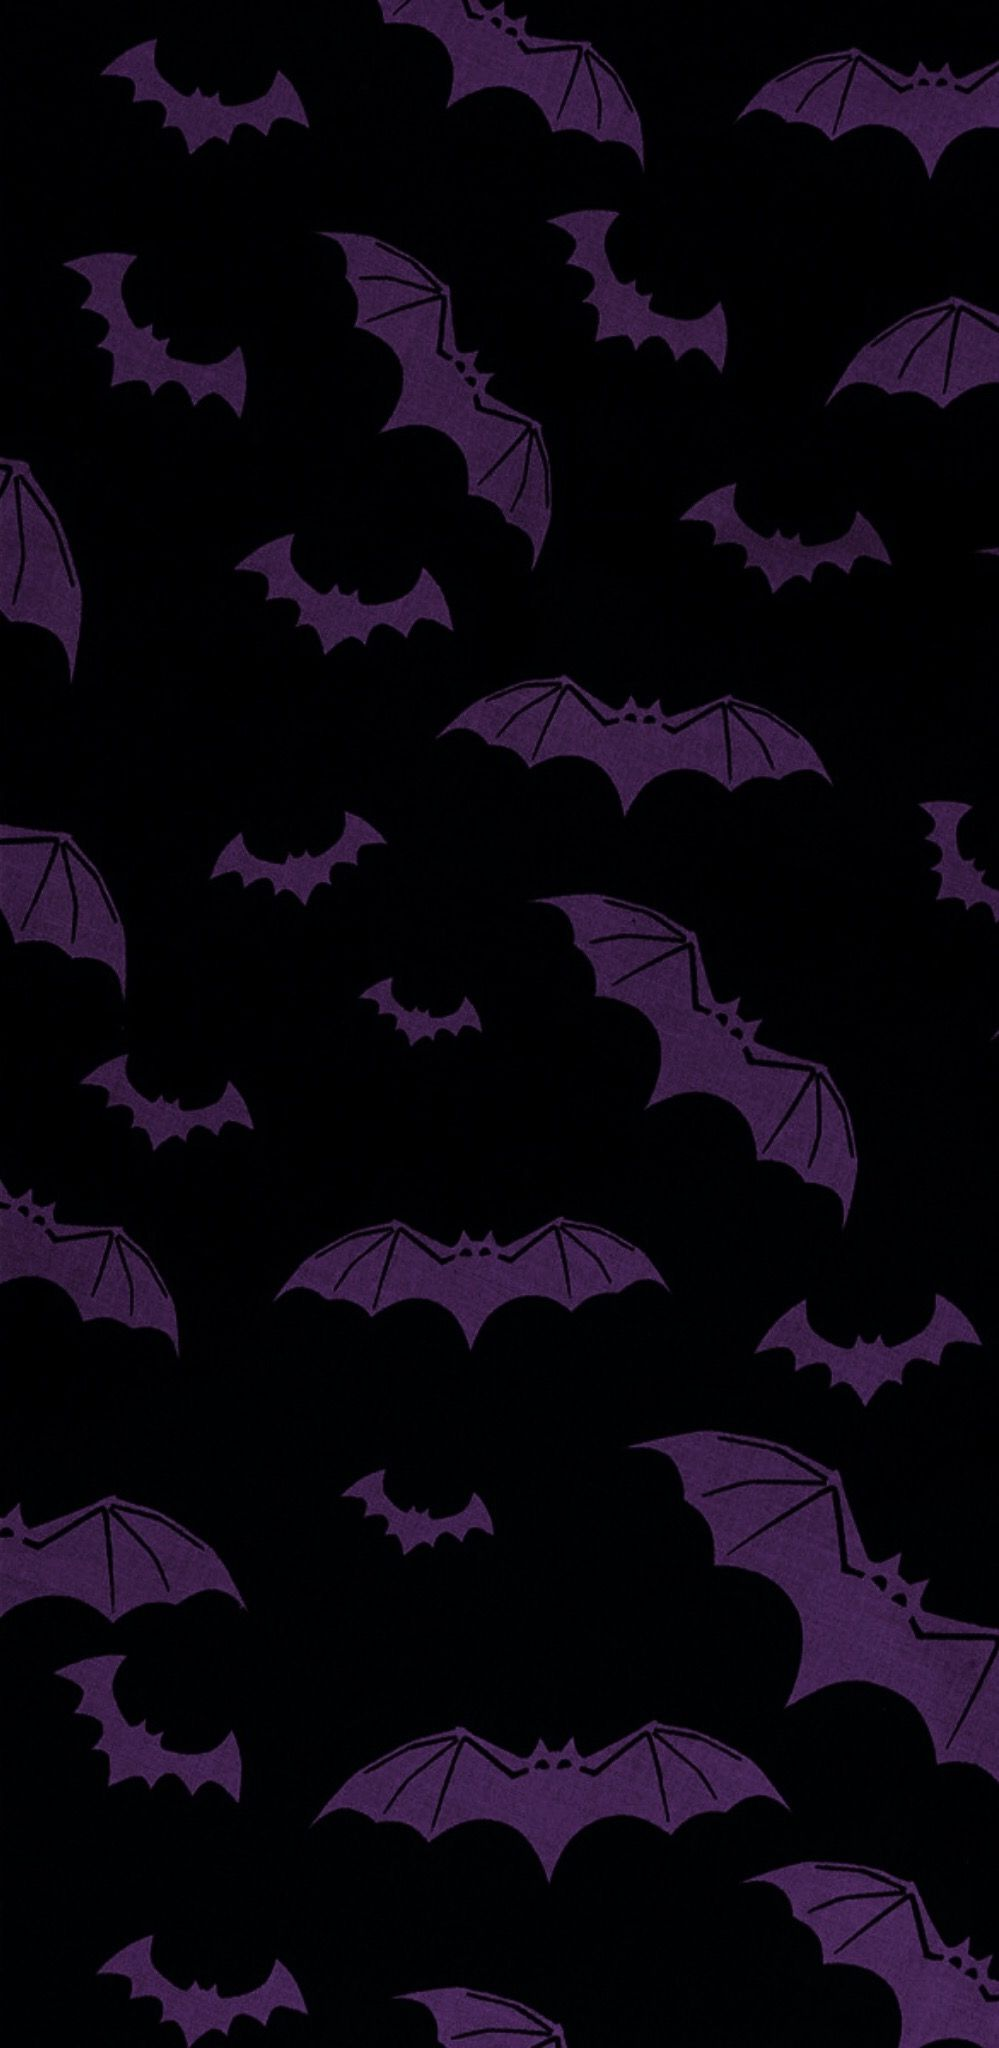 Batty wallpaper phone wallpaper halloween wallpaper - Gothic wallpaper for phone ...